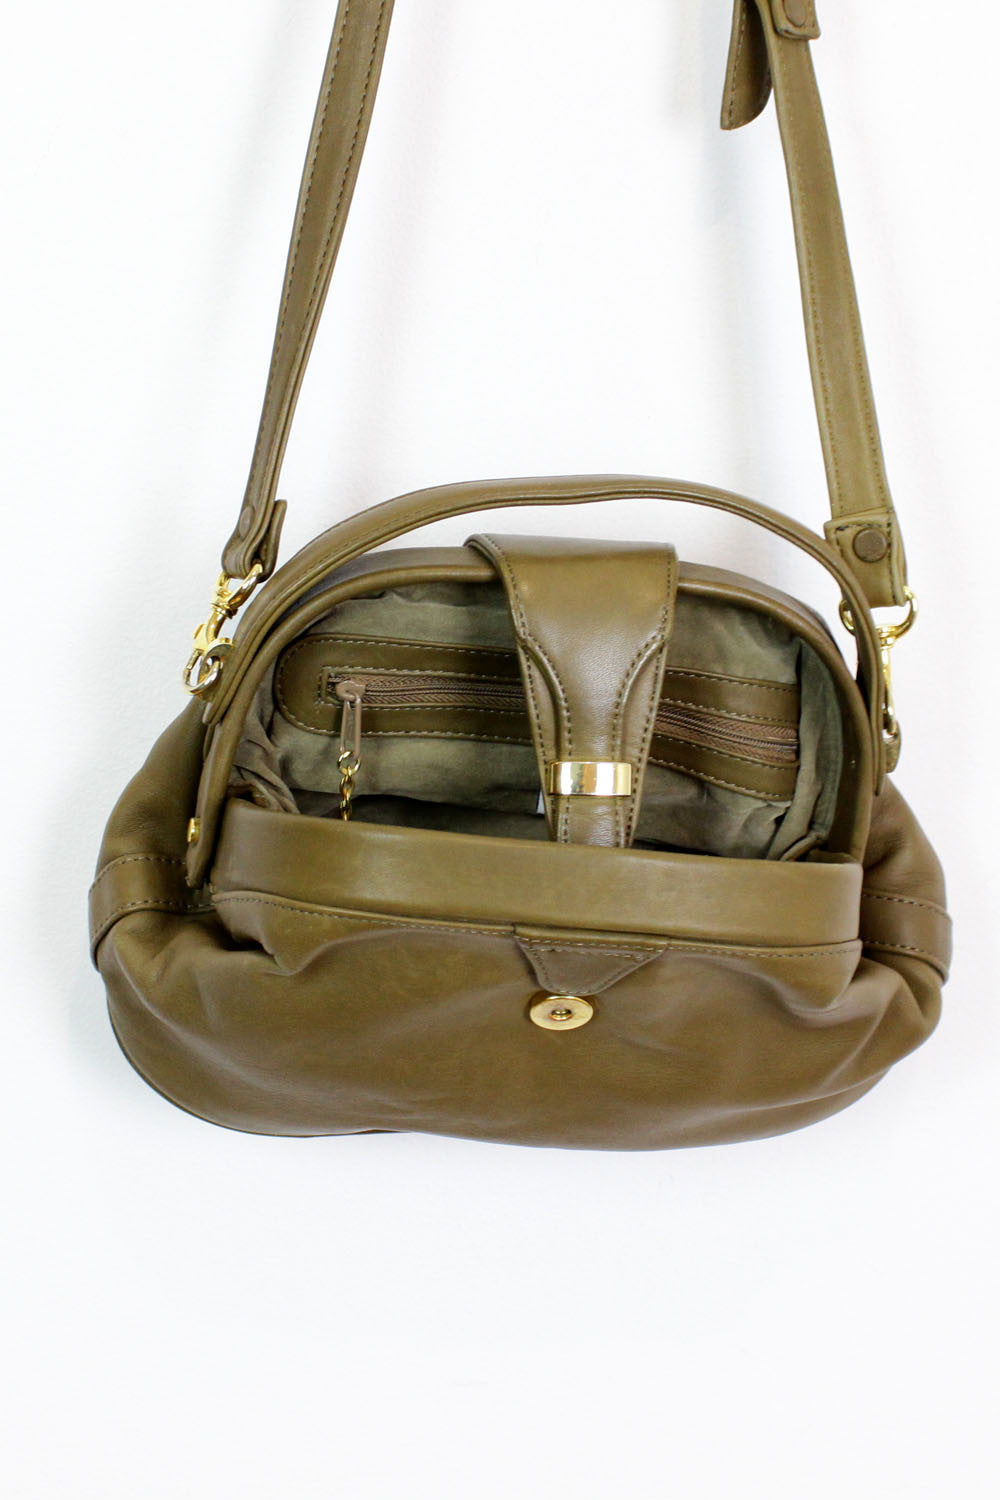 Brie olive satchel